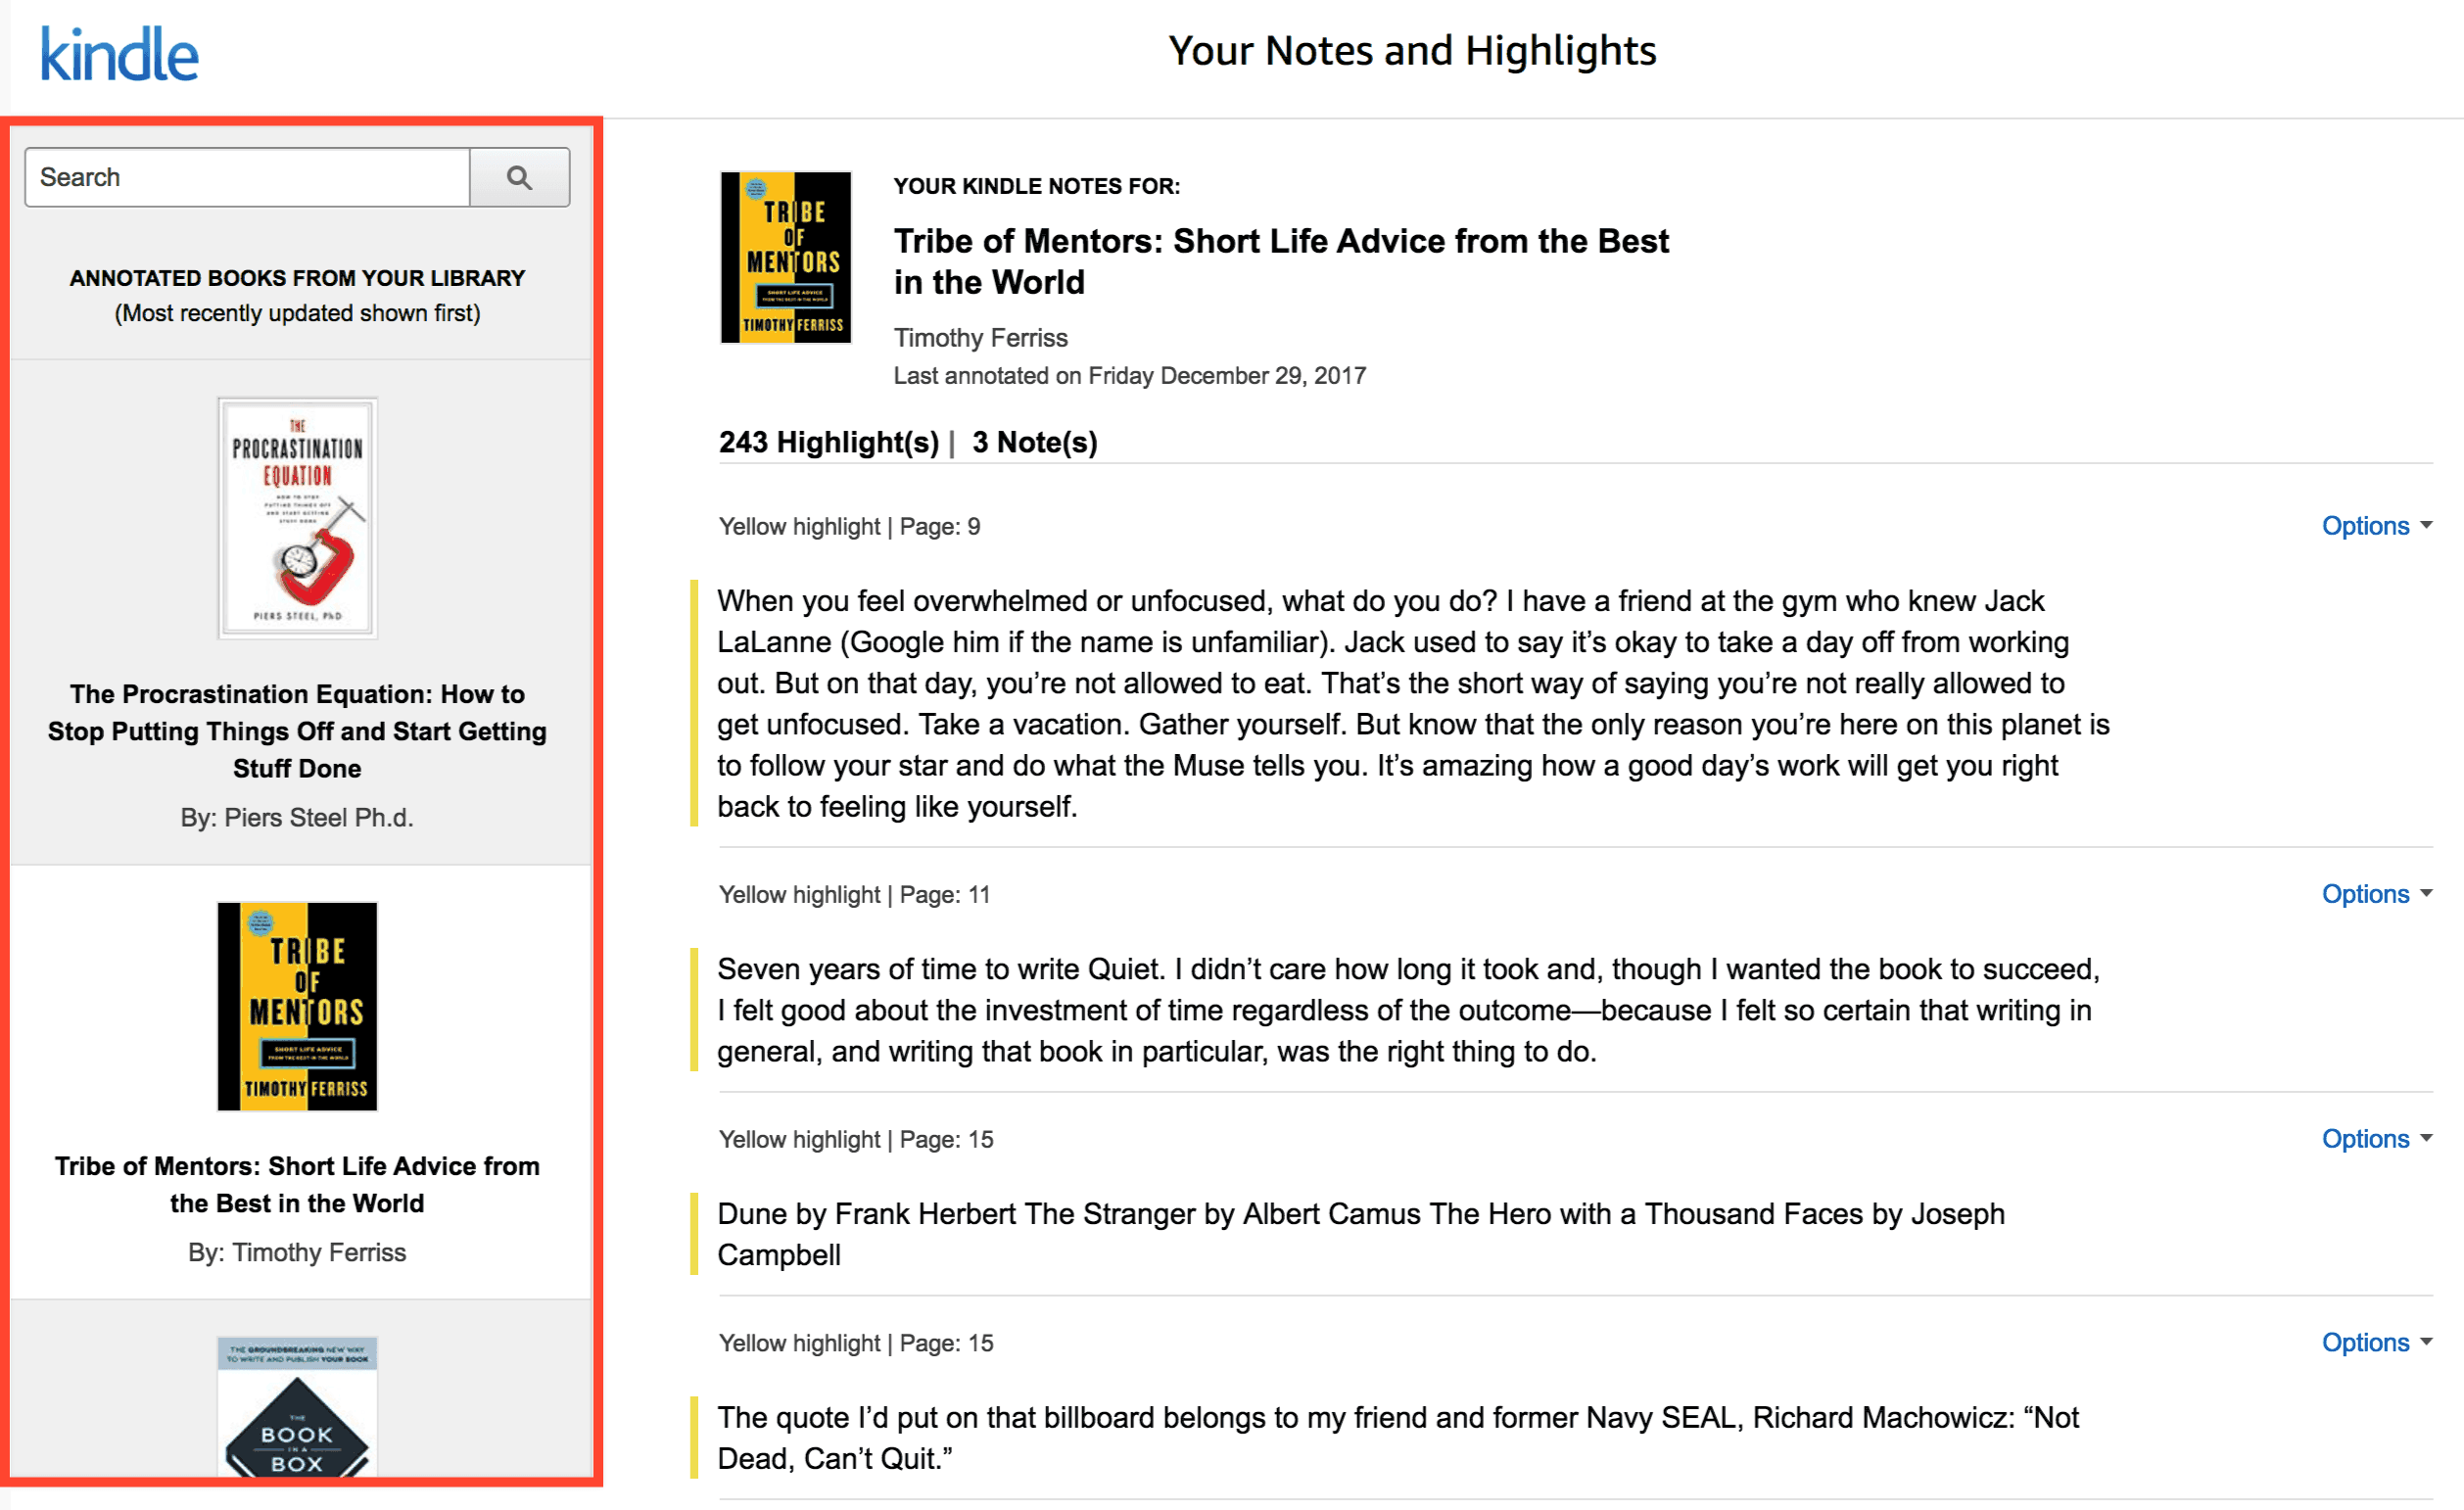 How to copy your Kindle Notes & Highlights in Evernote